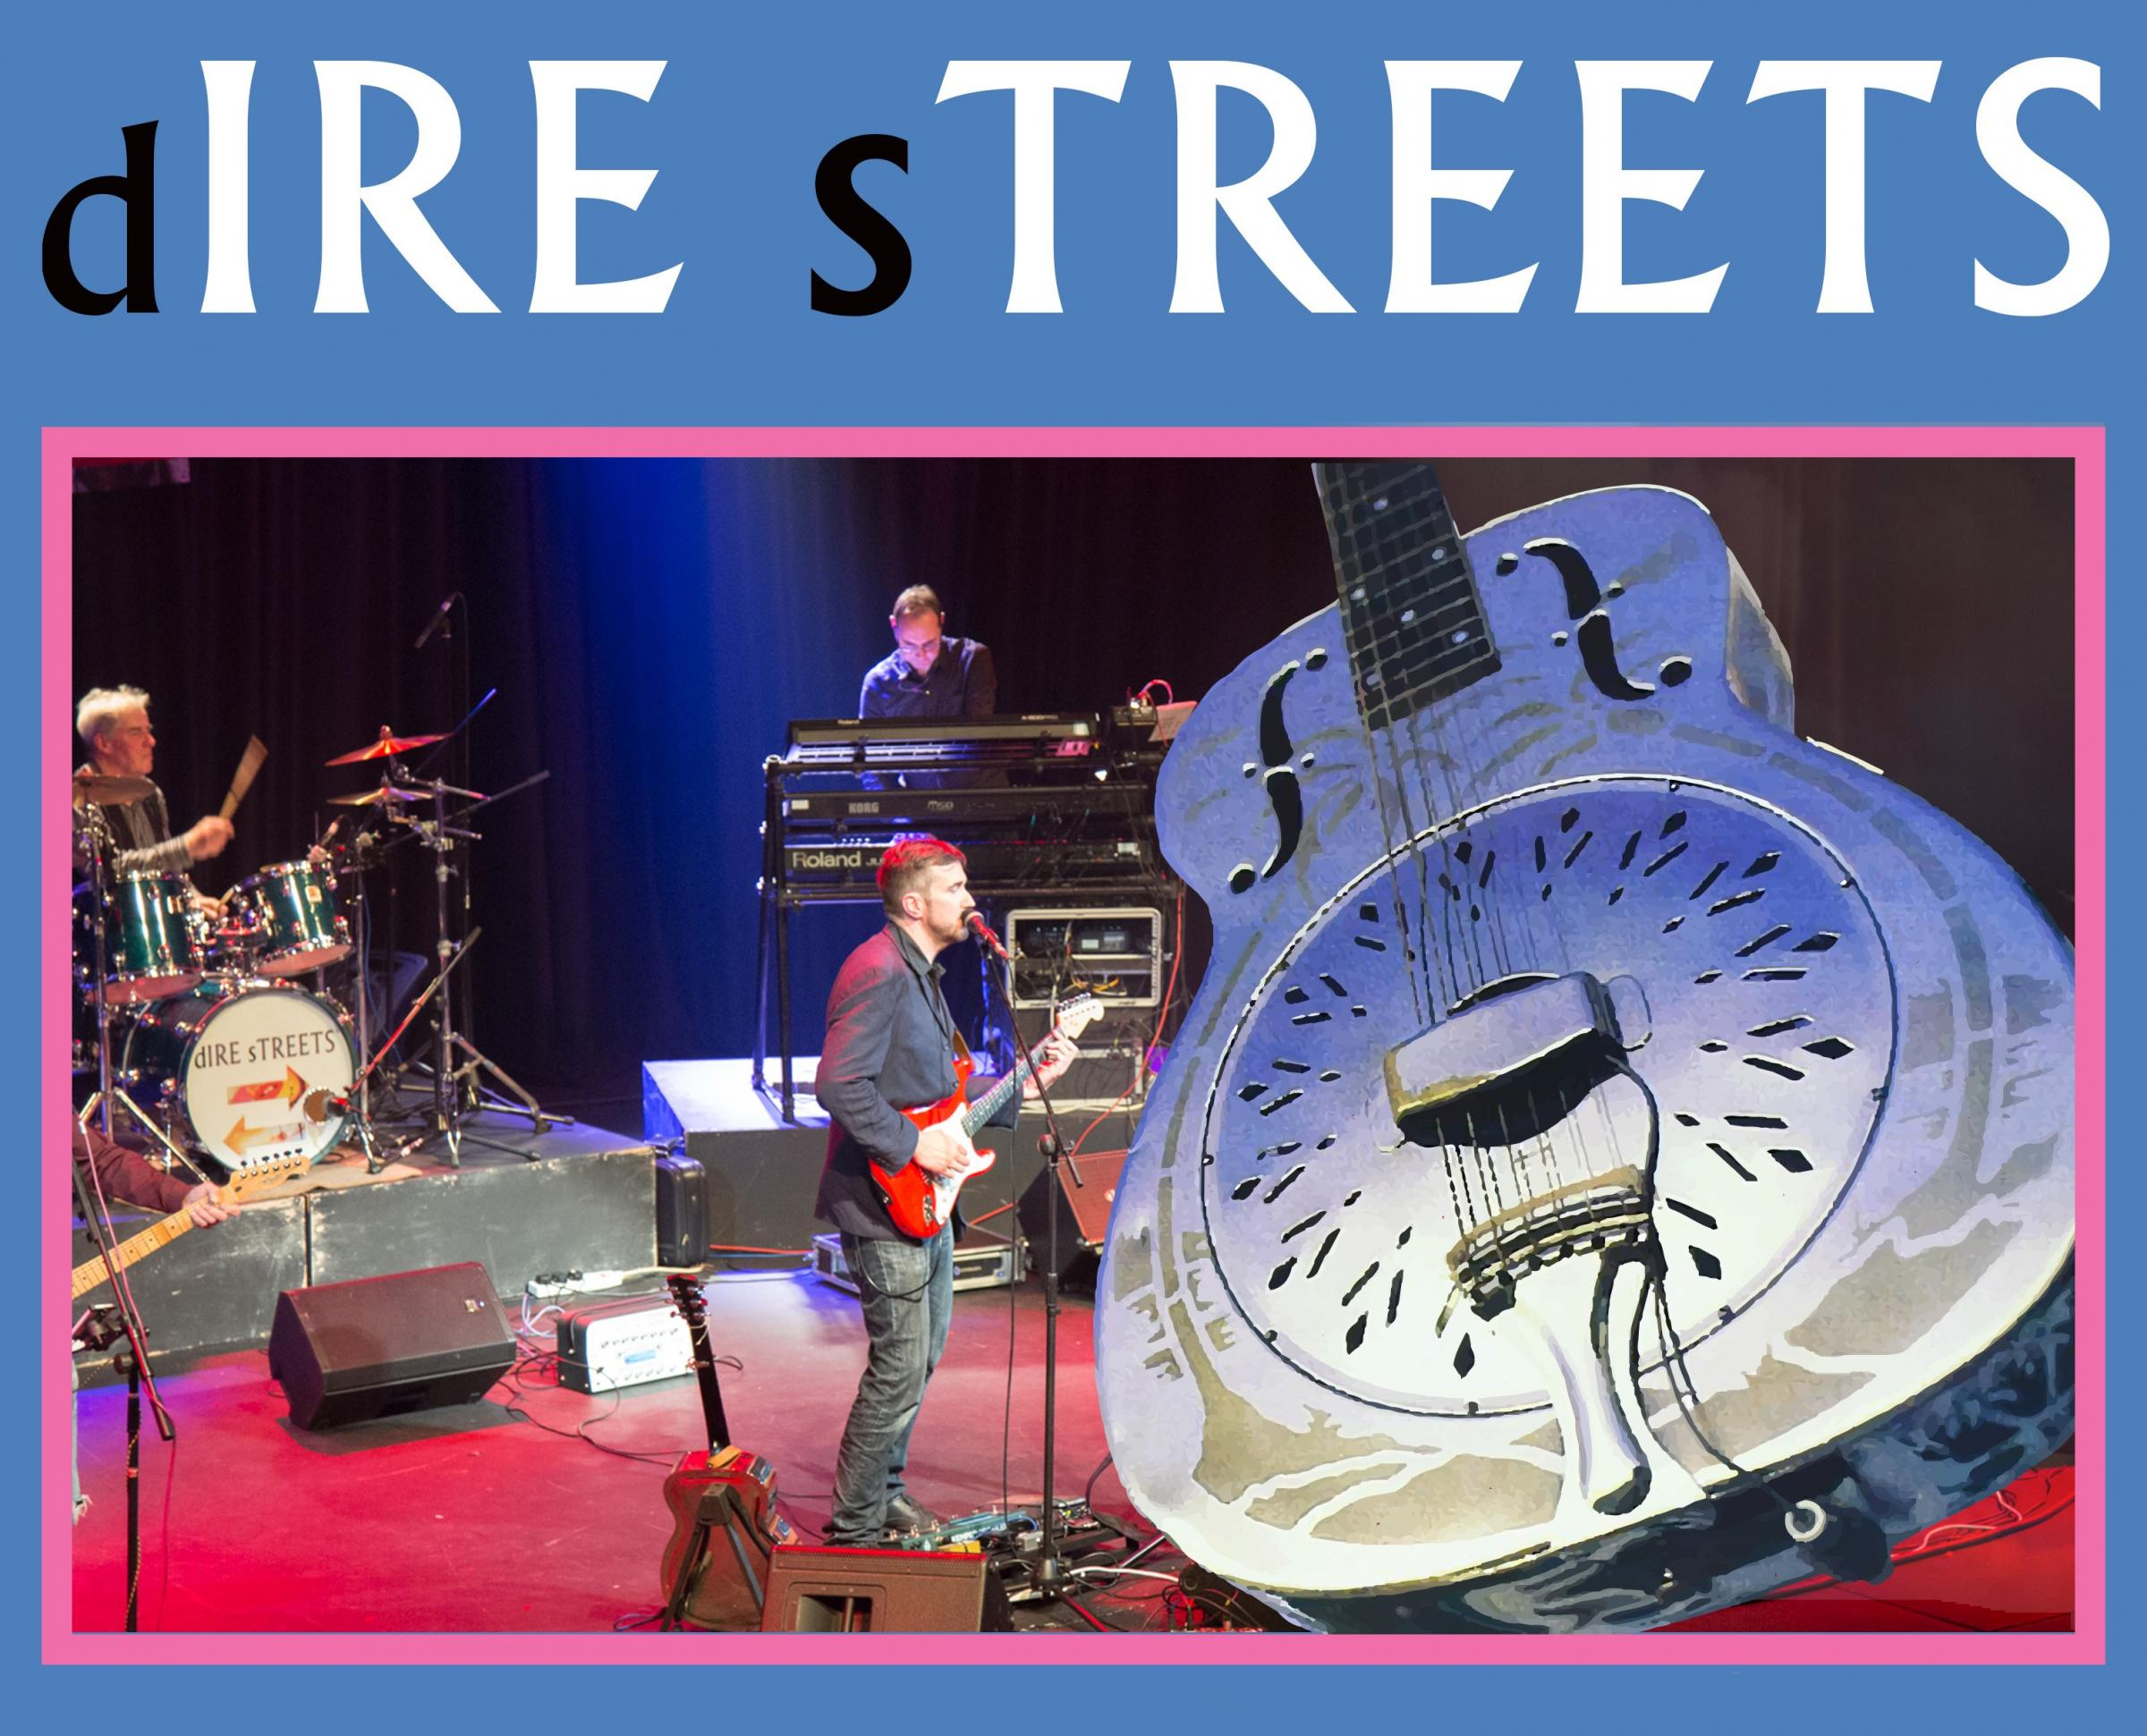 Dire Streets at The Palace Theatre, Redditch